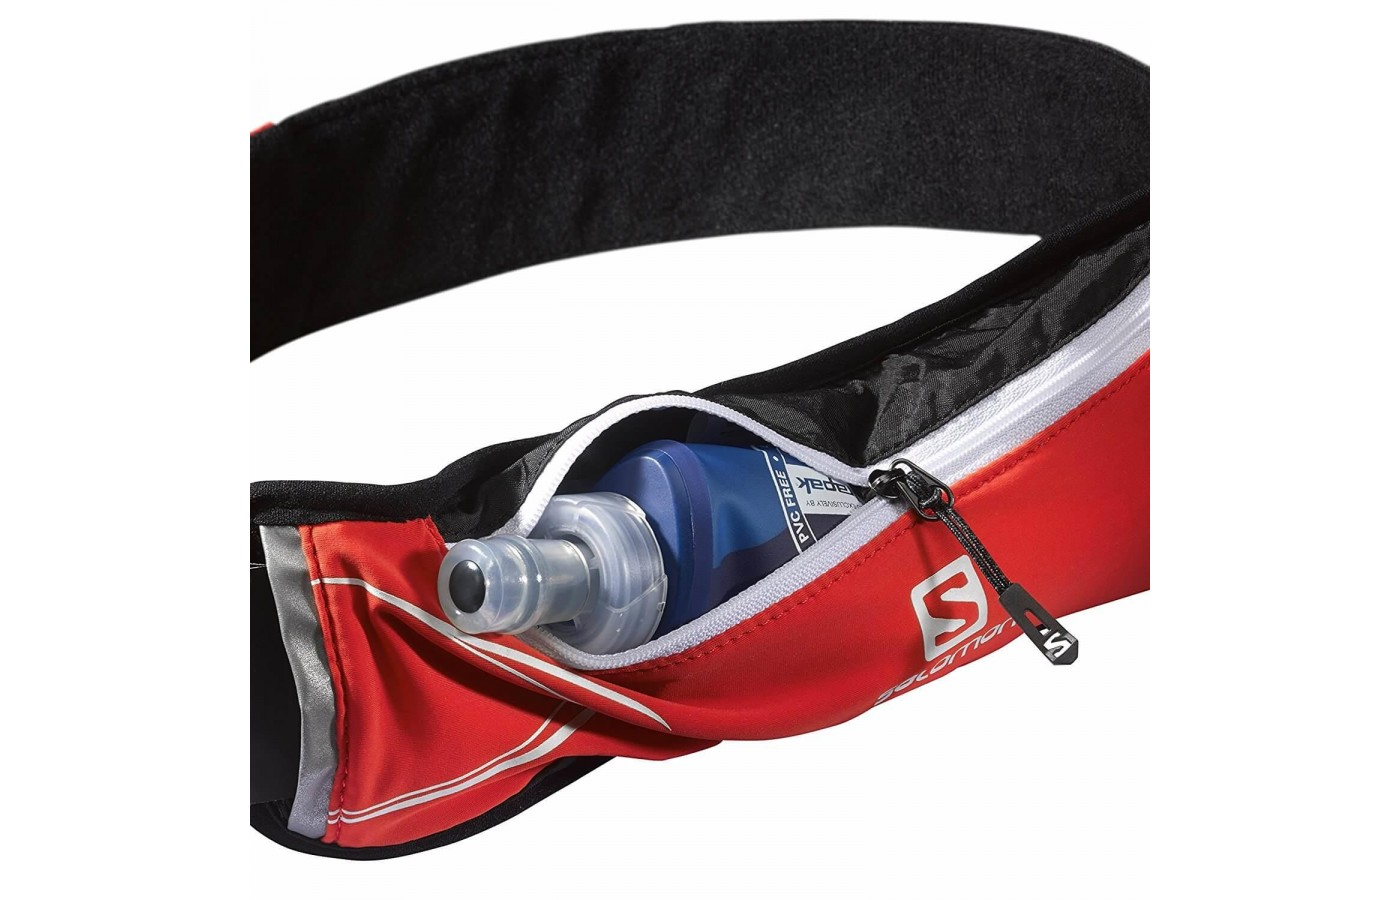 The included soft water flask fits perfectly in the belt's zippered pouch.